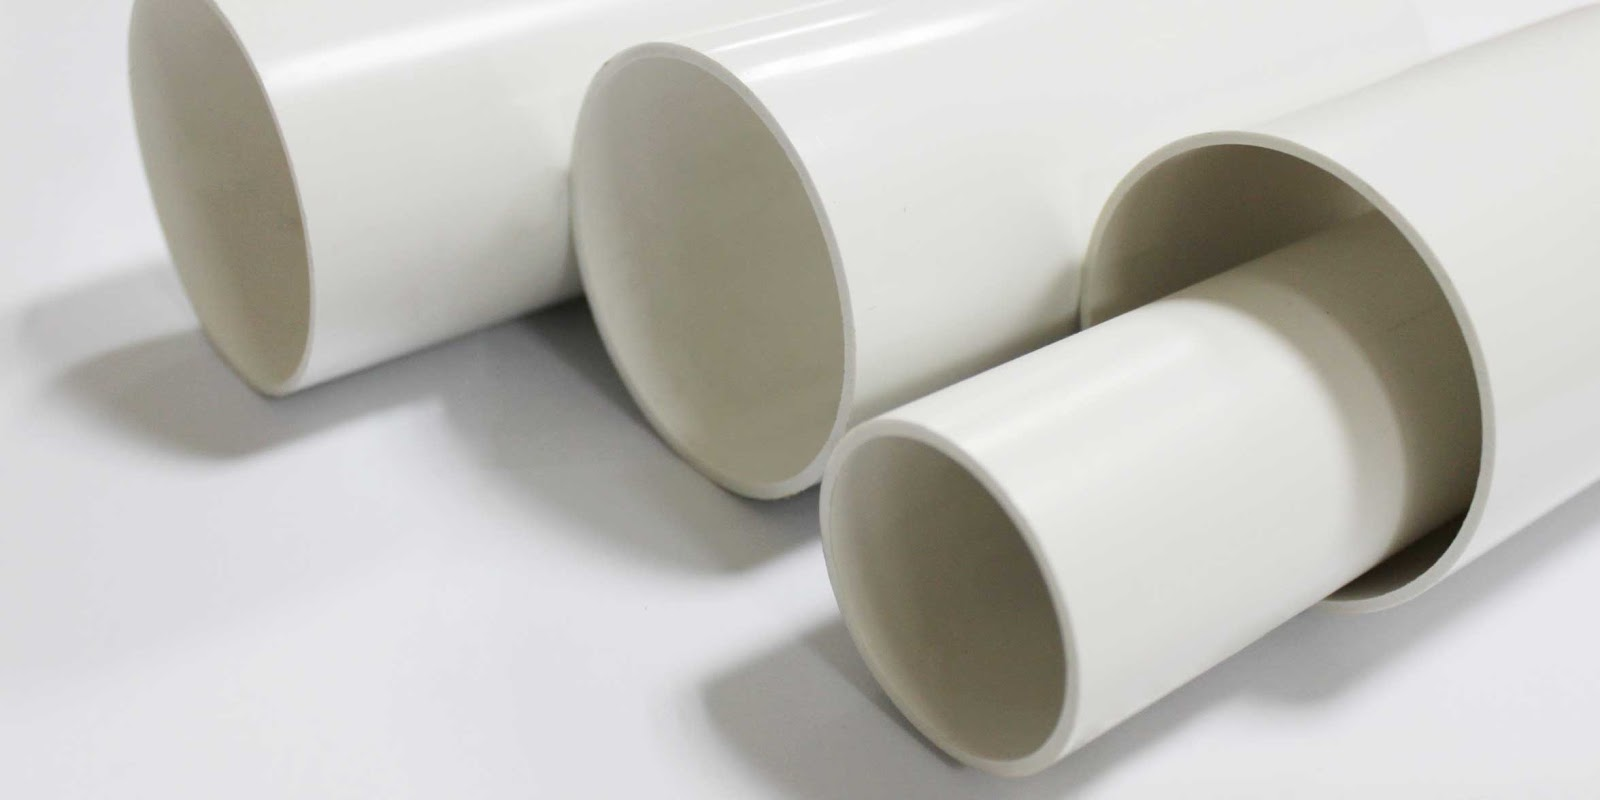 CPVC, PVC & UPVC Plastic Pipes & Fittings in India